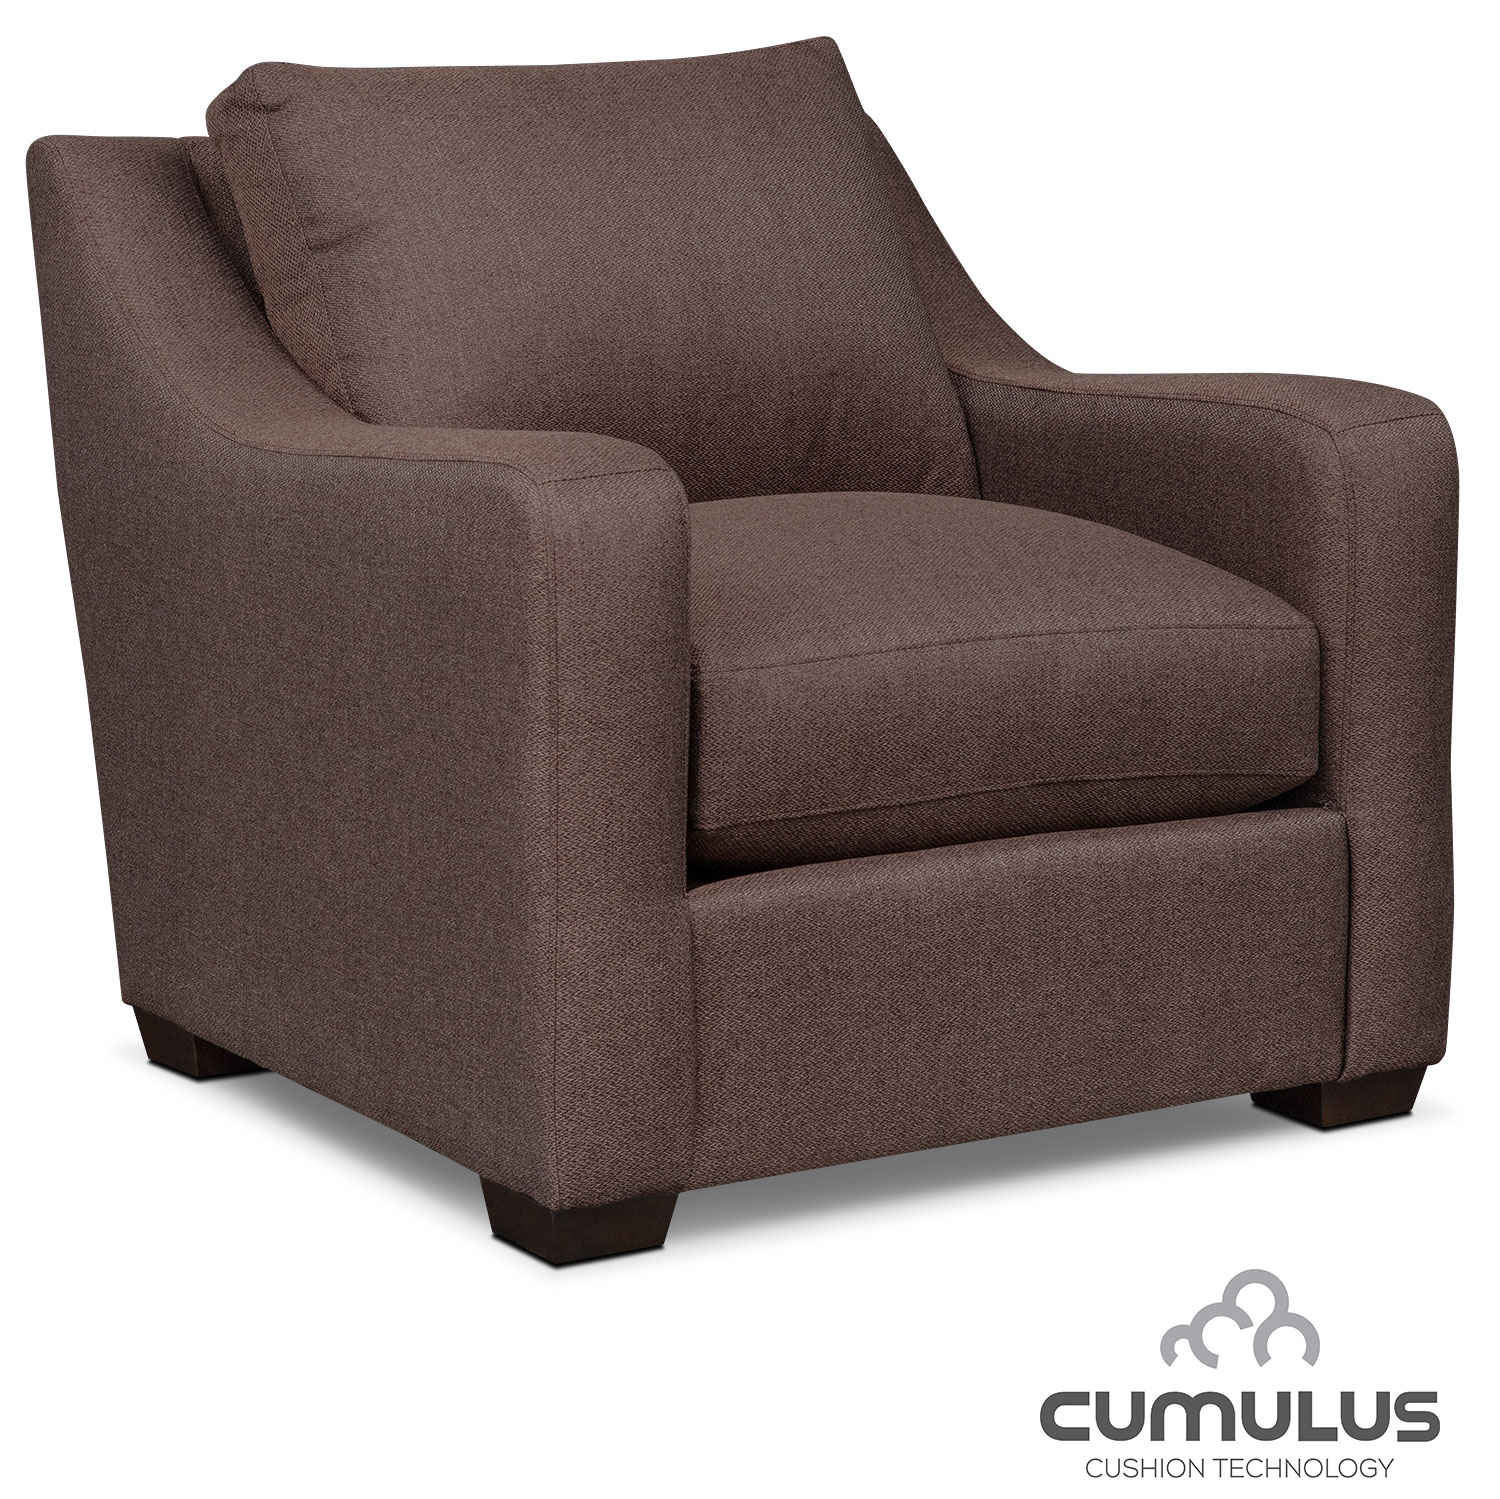 Living Room Furniture - Jules Cumulus Chair - Brown